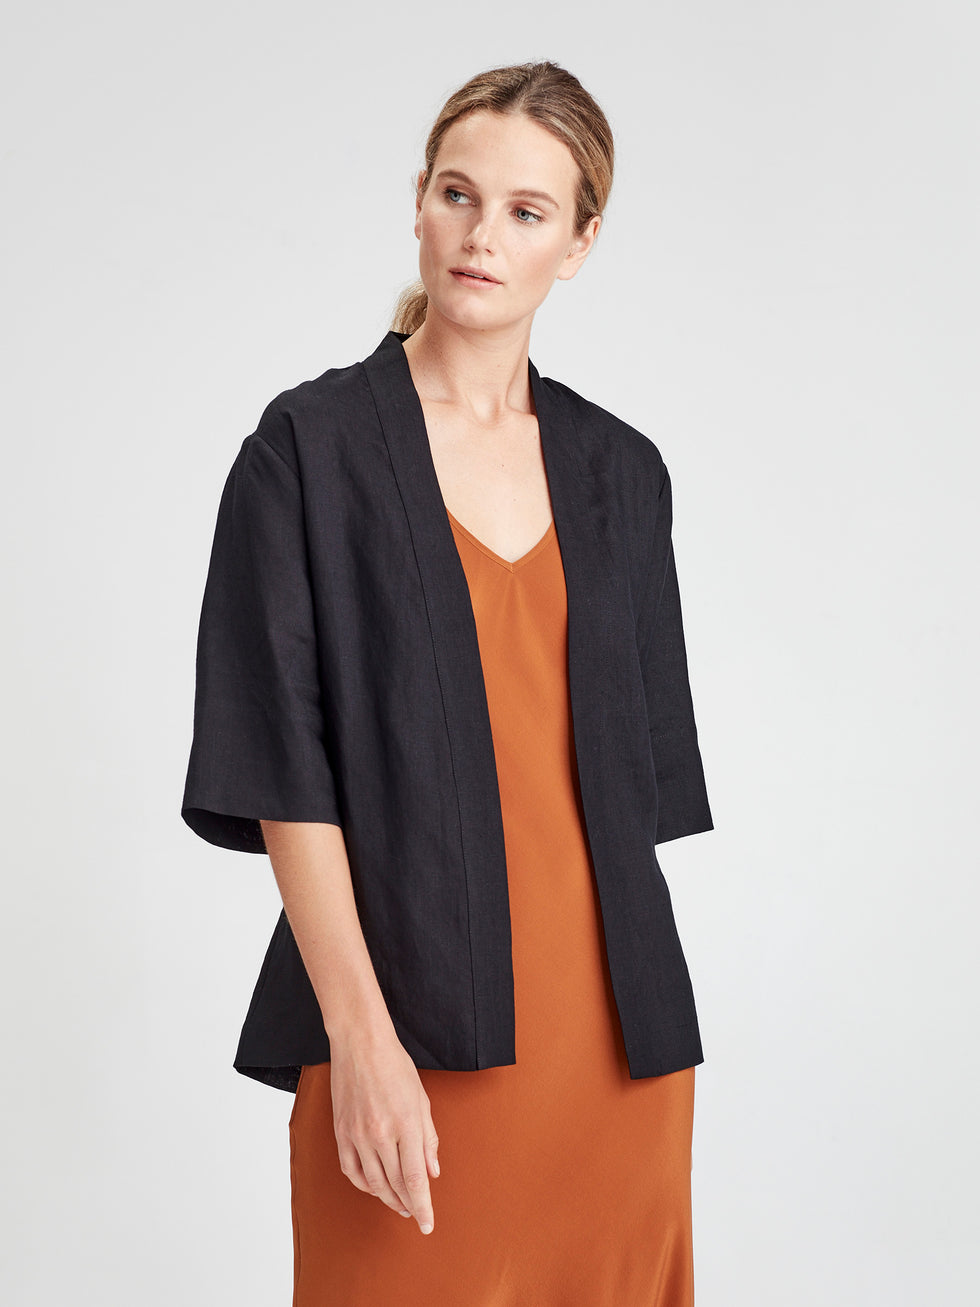 Mio Jacket (Summer Linen) Black